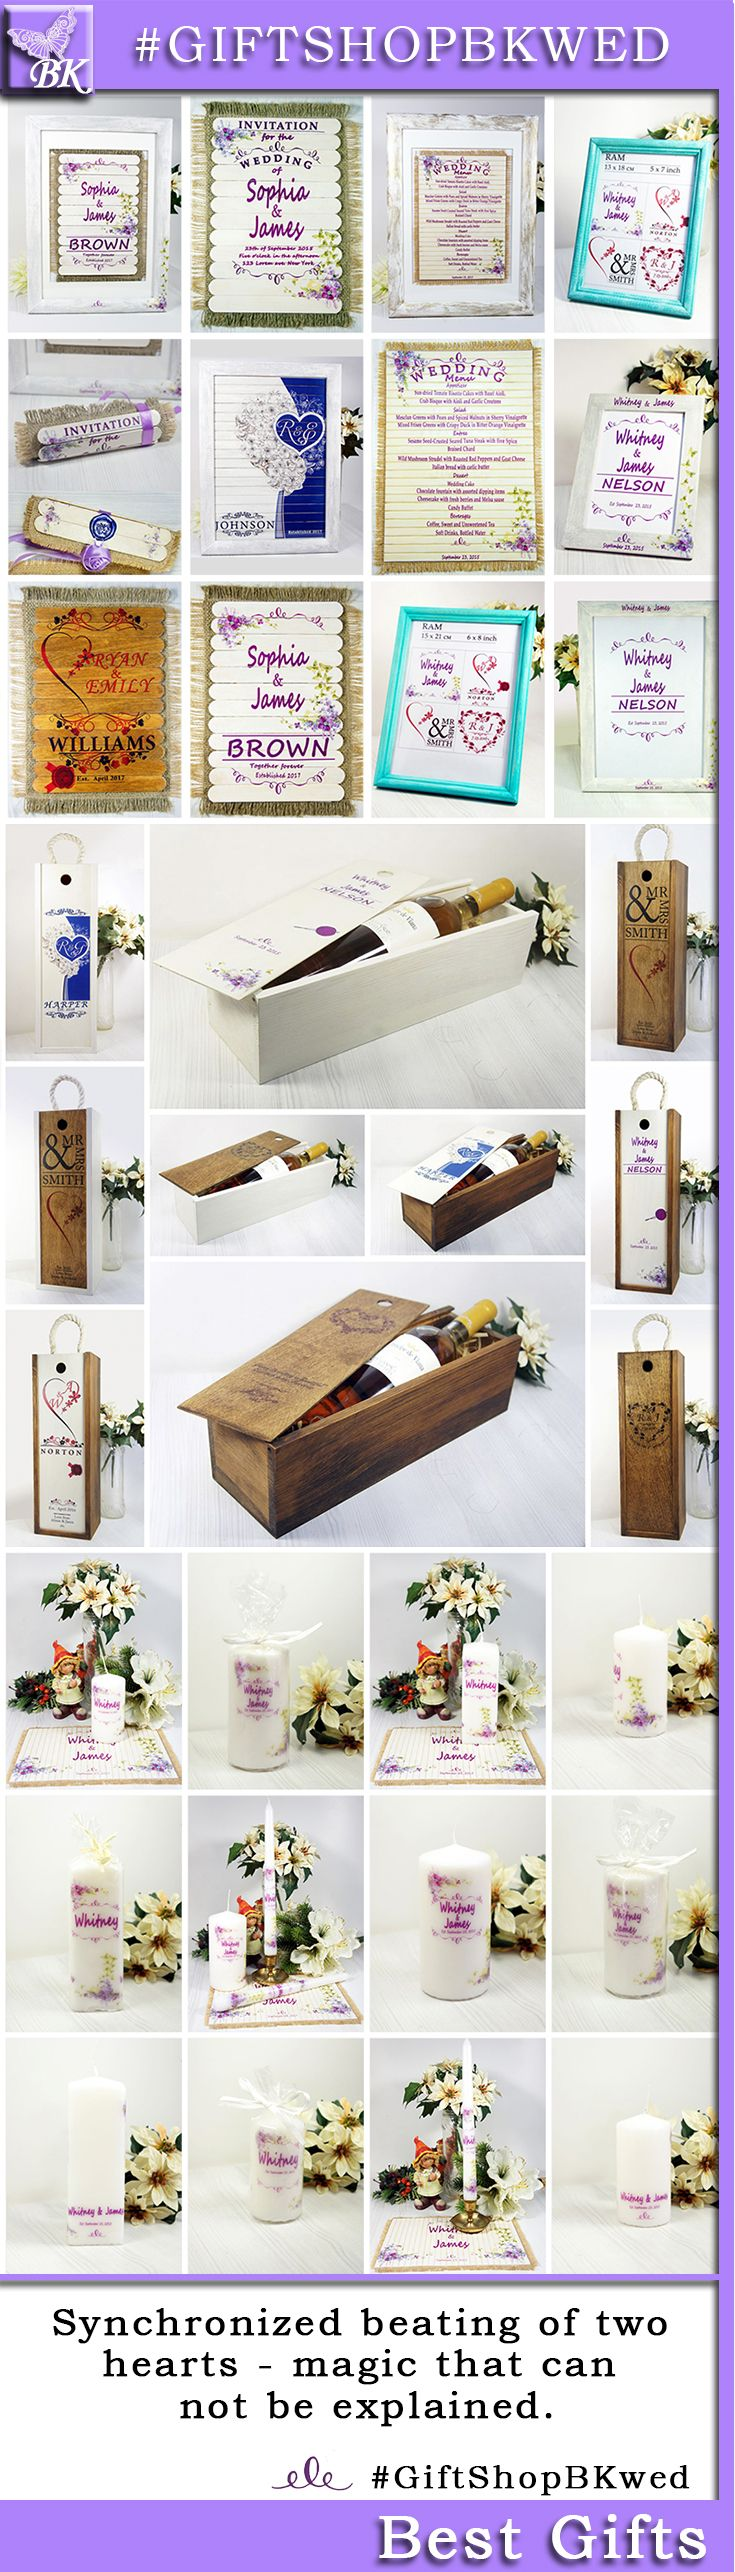 Personalized Wedding ceremony custom rustic wooden favor love Shabby Chic Bride Groom His Her mr mrs #giftshopbkwed #wedding #photo #ceremony #personalized #gift #rustic #Bride #Groom #His #Her #mr #mrs #anniversary #custom #monogram #diy #shabbychic #favor #love #tree #decor #shabby #chic #home #ideas #nature #winebox  #birthday #housewarming #wood #wooden #wine #box #candle #frame